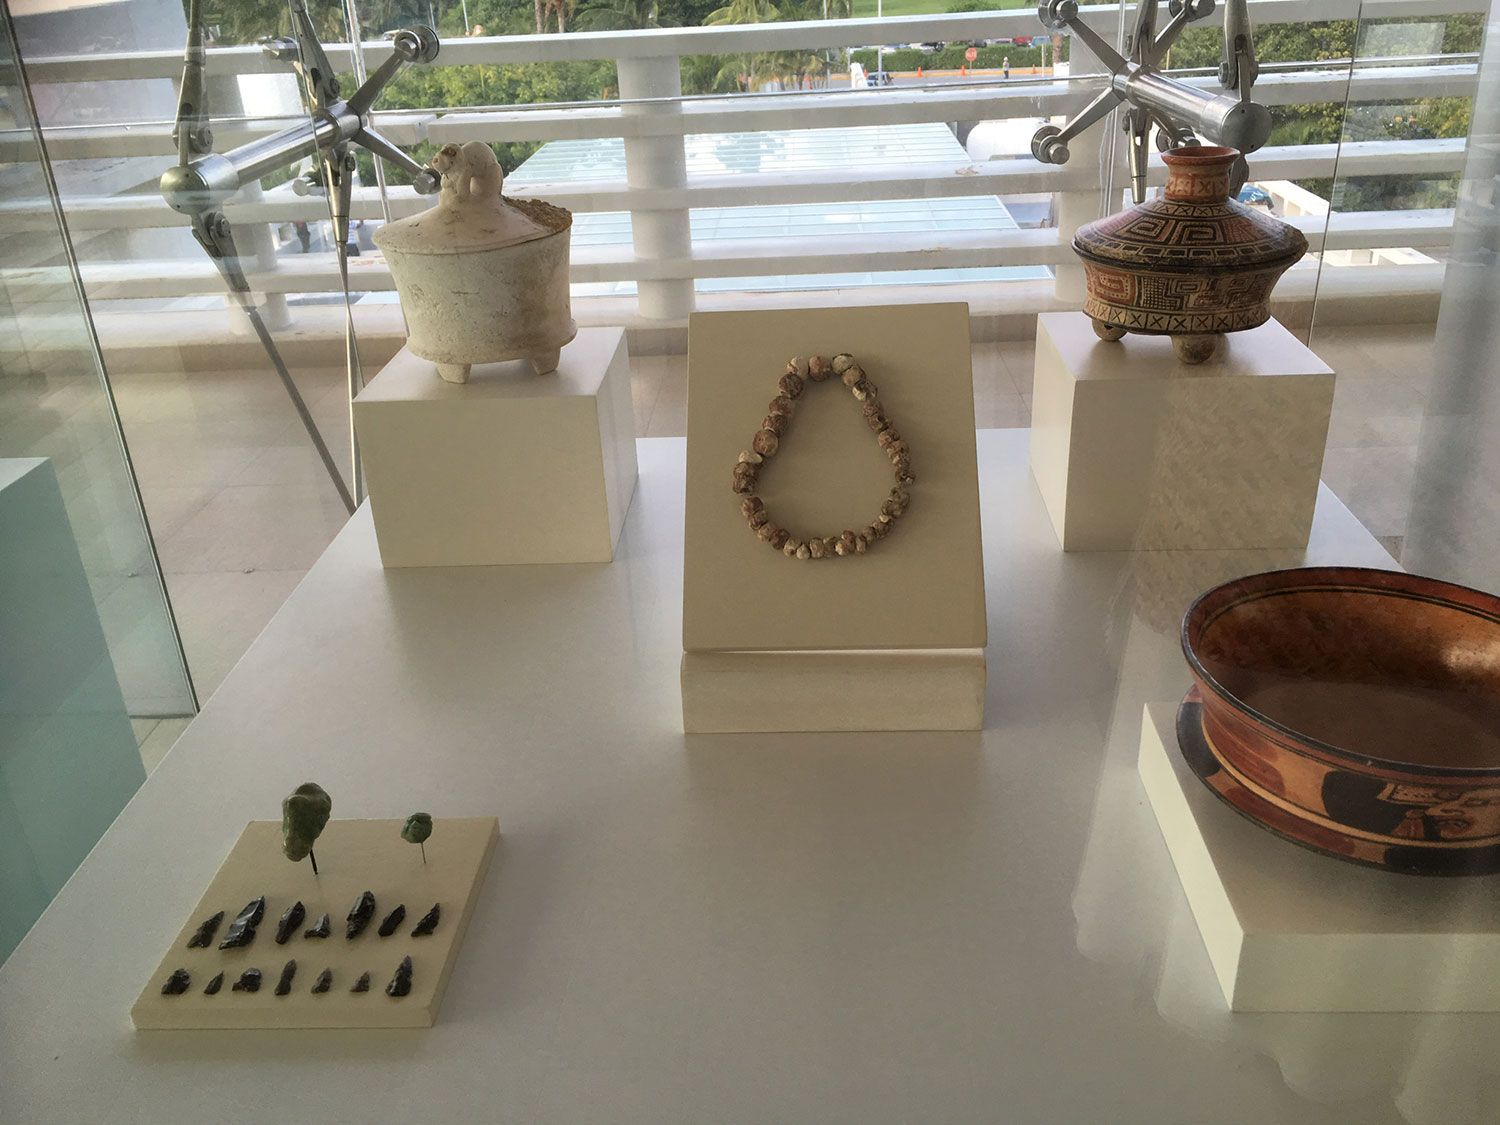 Jewellery and ceramic pots, now at the Mayan Museum in Cancún.